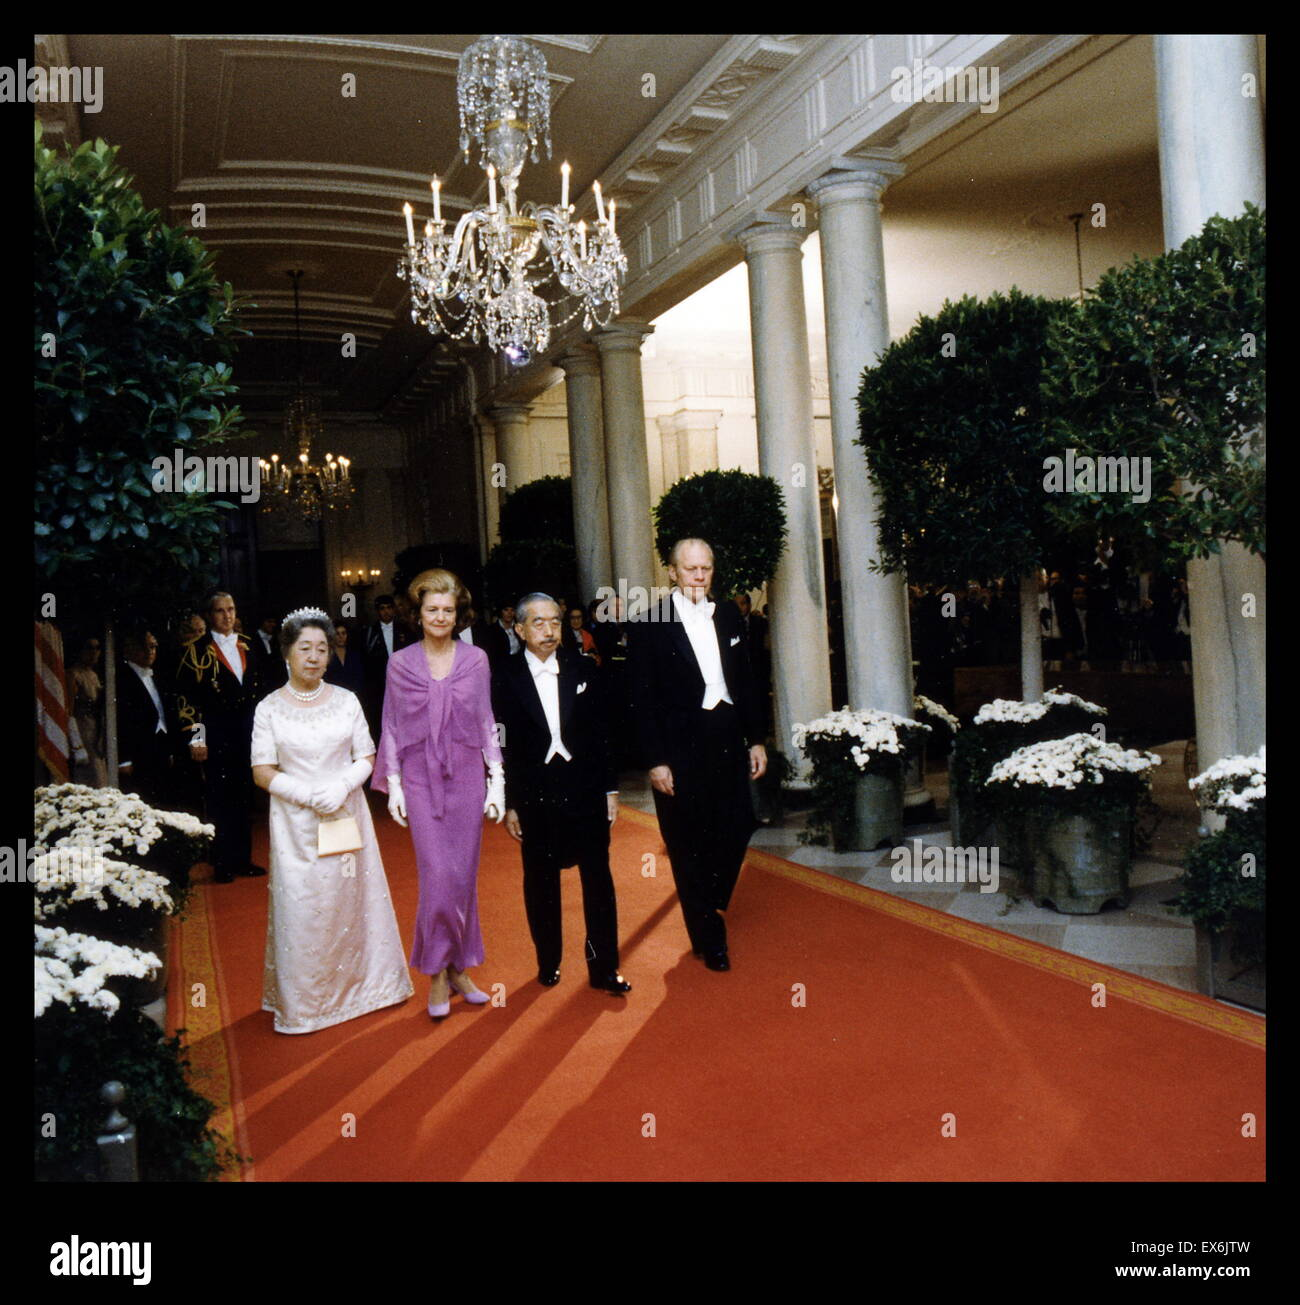 Emperor Hirohito of Japan with Empress Nagako visit President Gerald Ford and his wife Betty in Washington DC 1975 - Stock Image